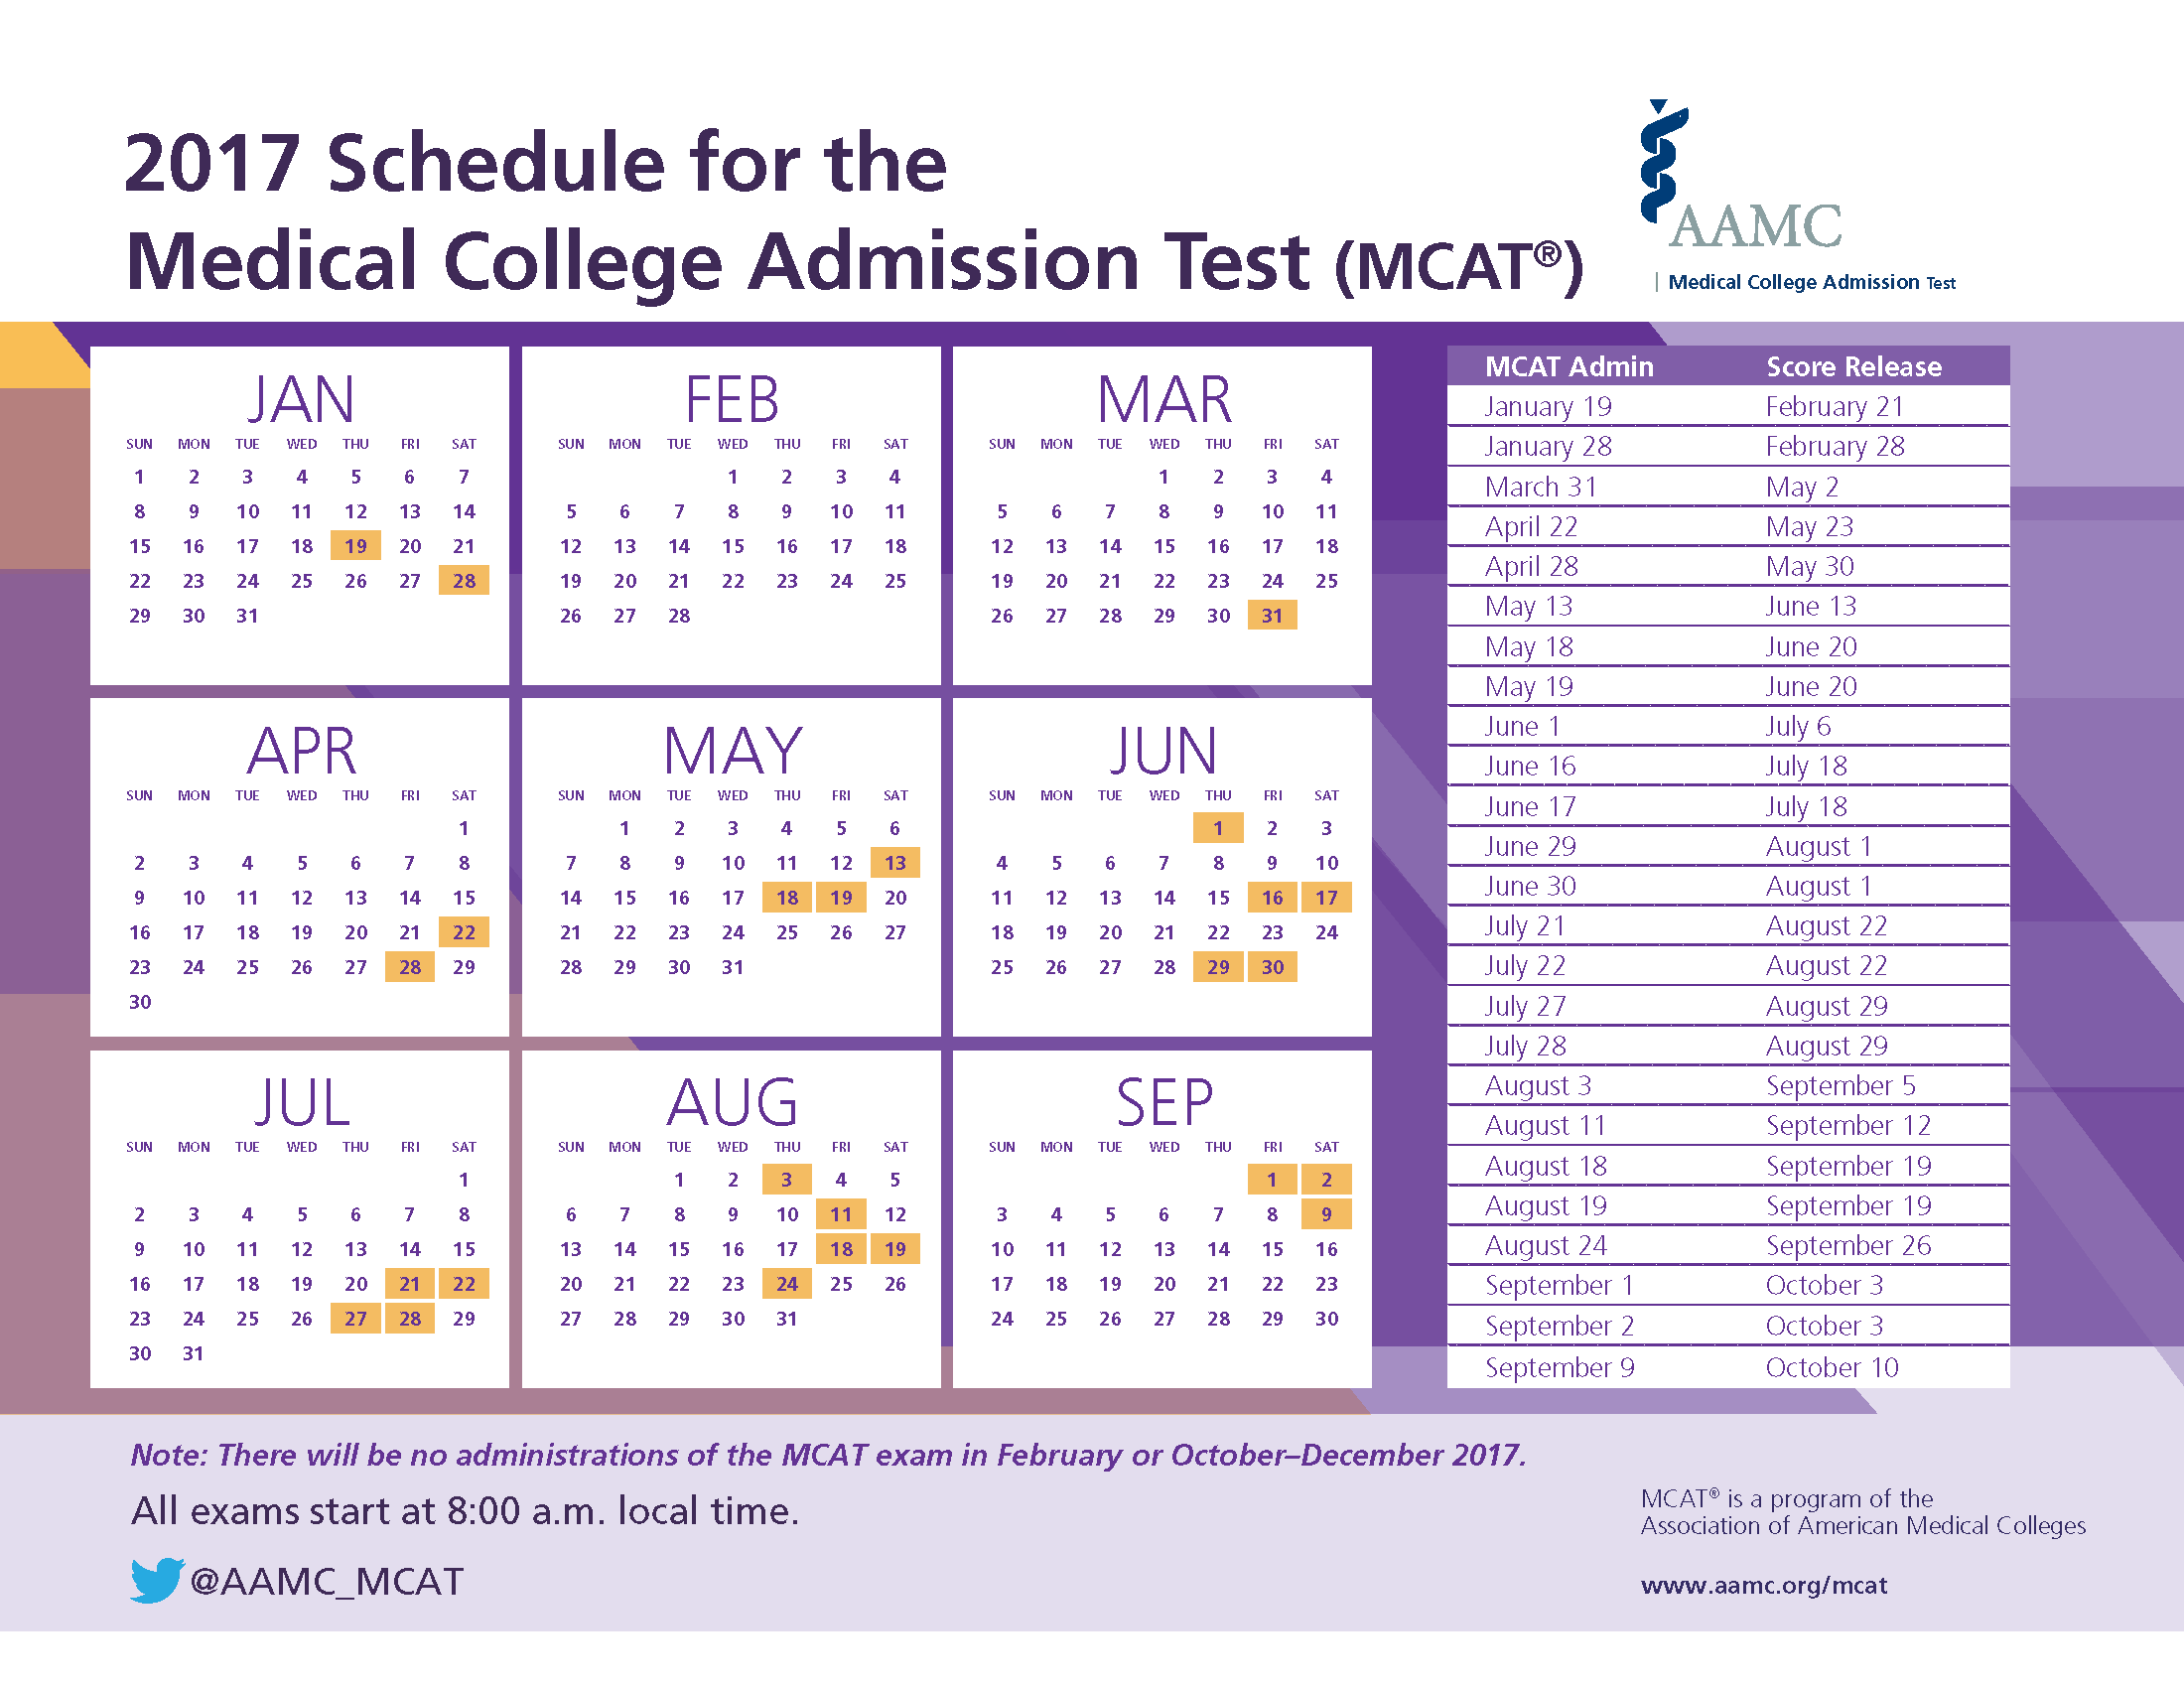 ... medical schools may review your application without waiting for your  new score. 9. Standardized Tests Contact MCAT mcat@aamc.org | 202-828-